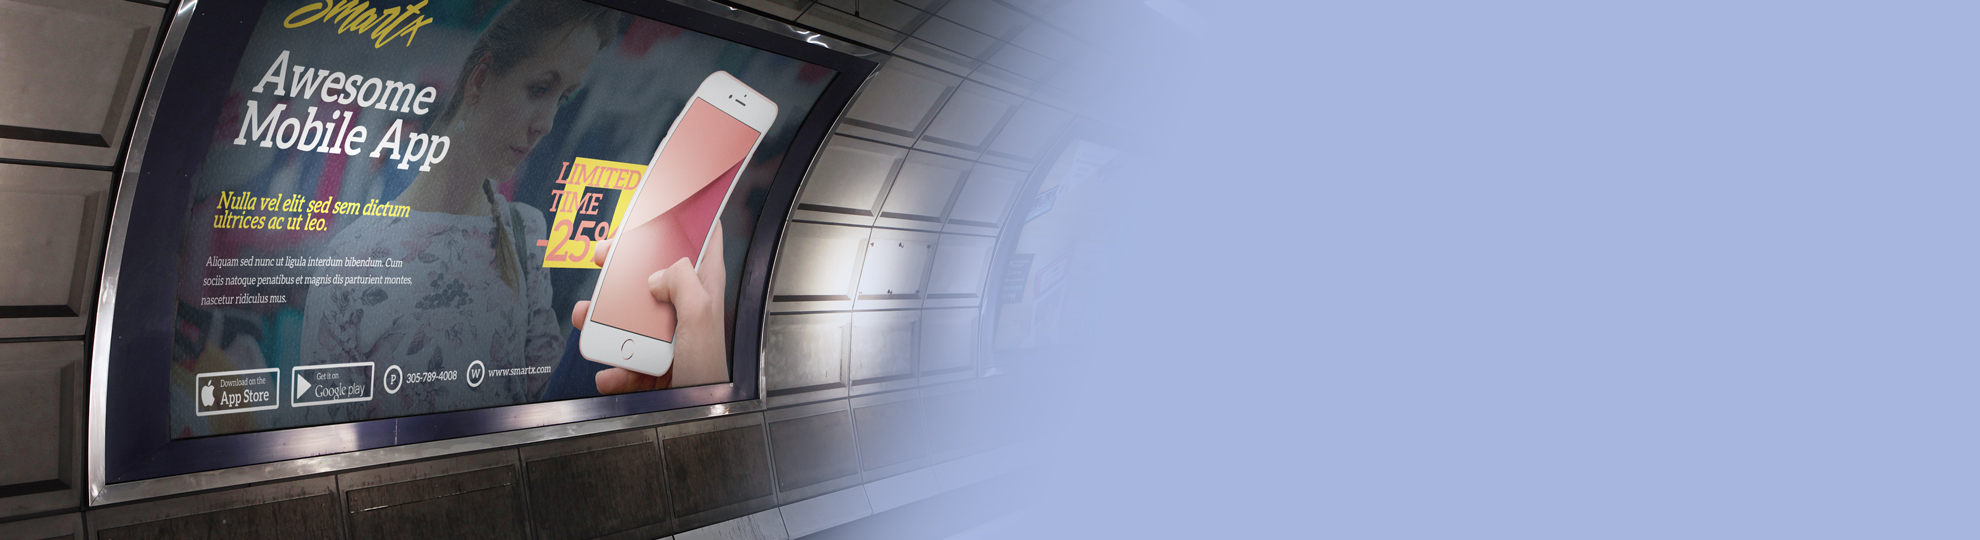 Impression affiches metro grand format